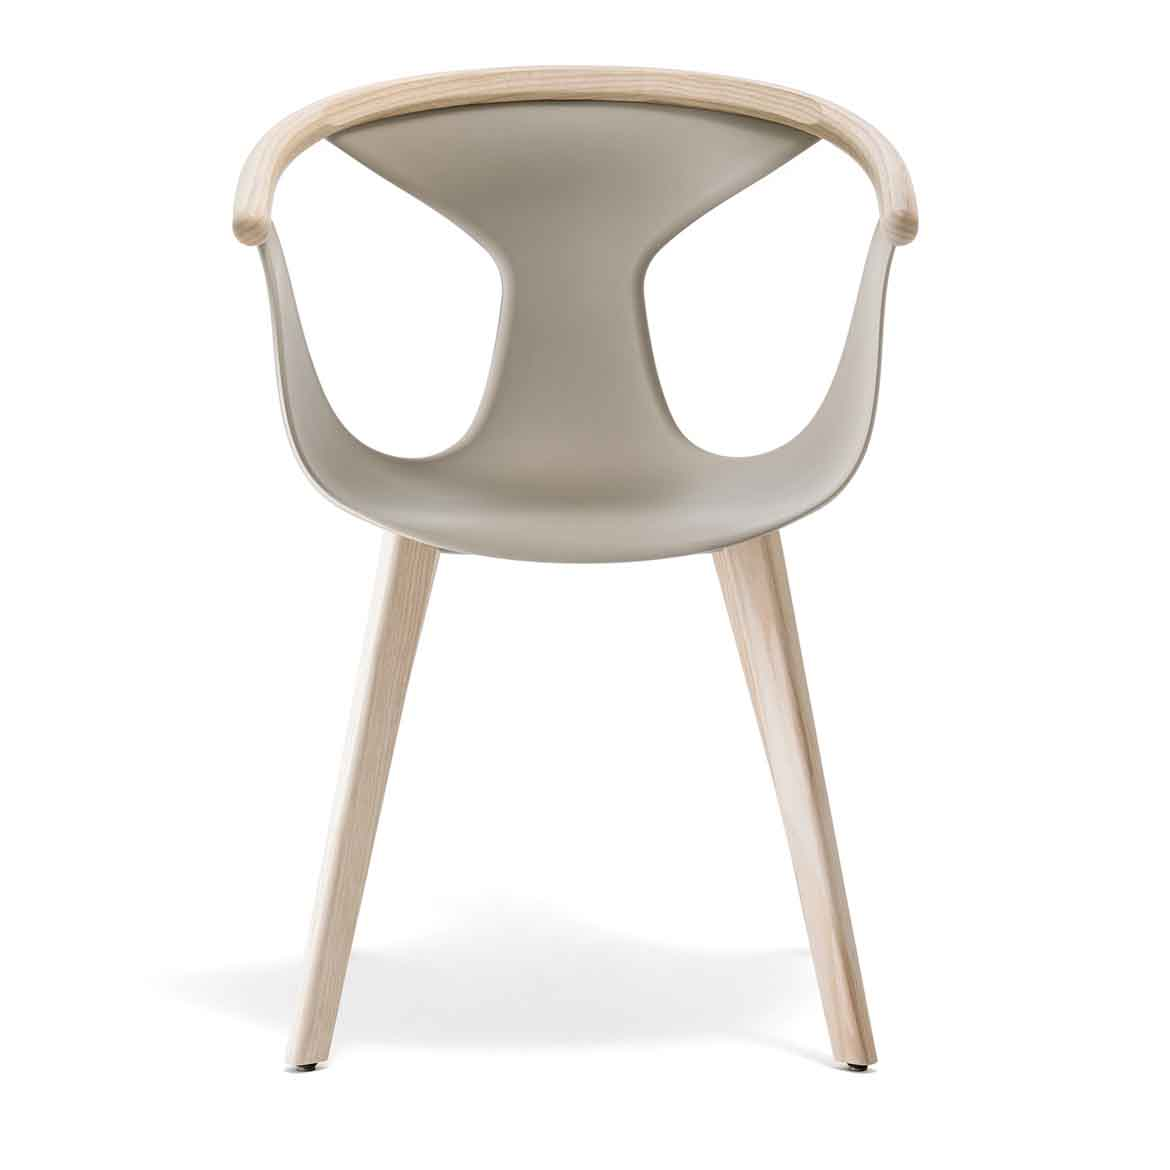 Ash wood or powder coated steel frame. Avaliable in different colors. Seat is made of polypropylene.